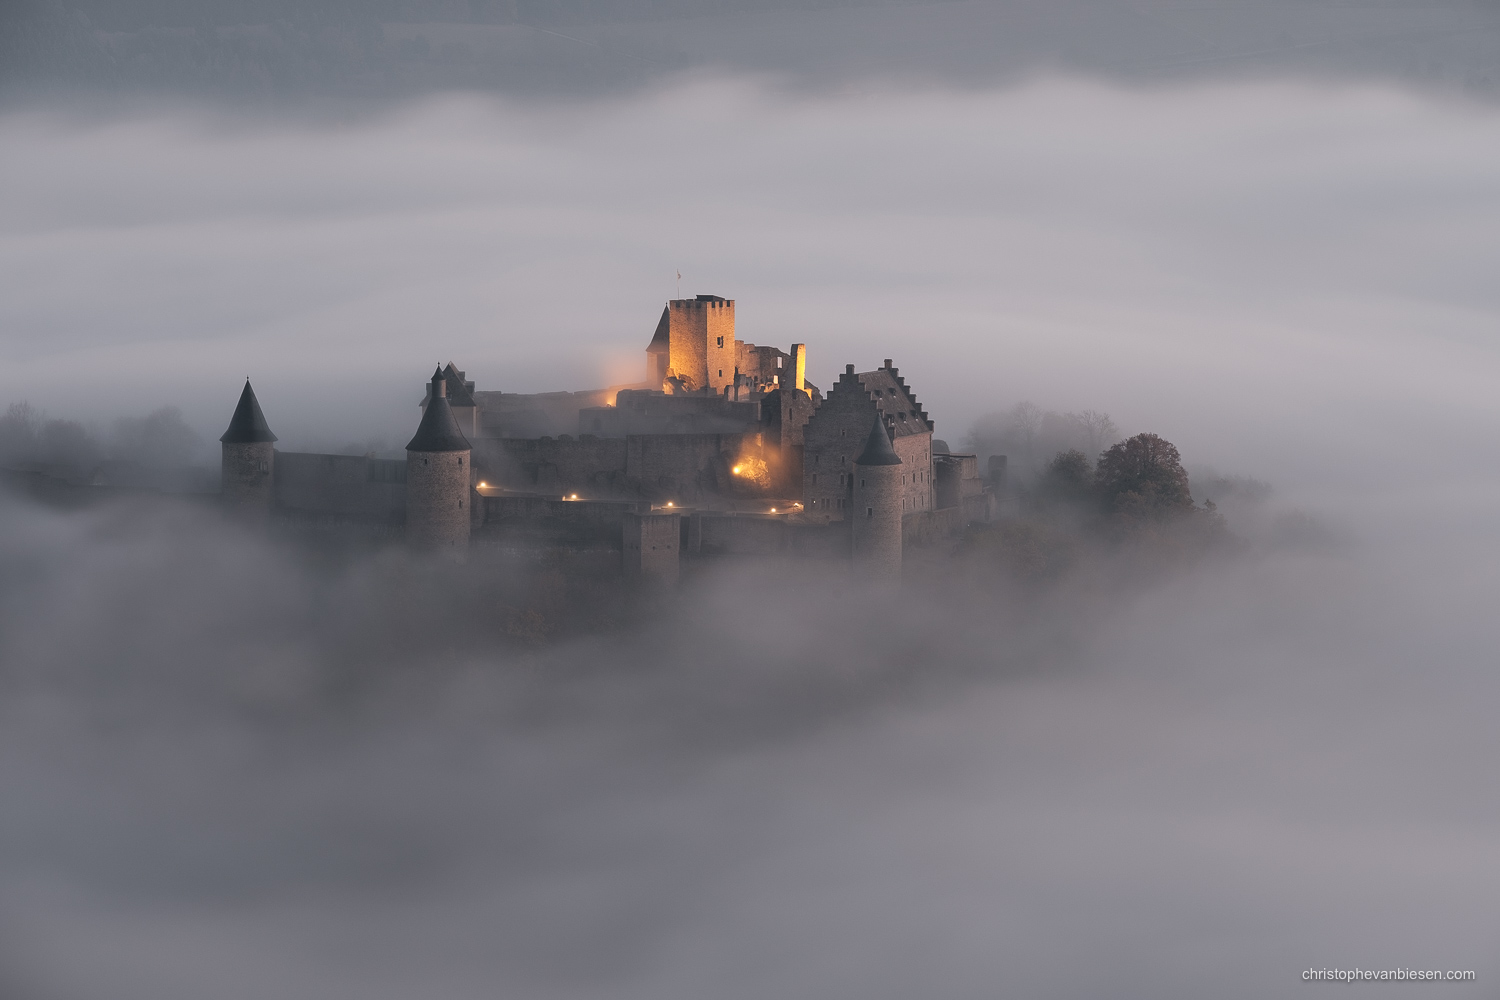 Bourscheid Castle in the fog - Chateau de Bourscheid - Luxembourg - Bourscheid Castle at night emerging from the fog - Veiled by Shadows and Fog